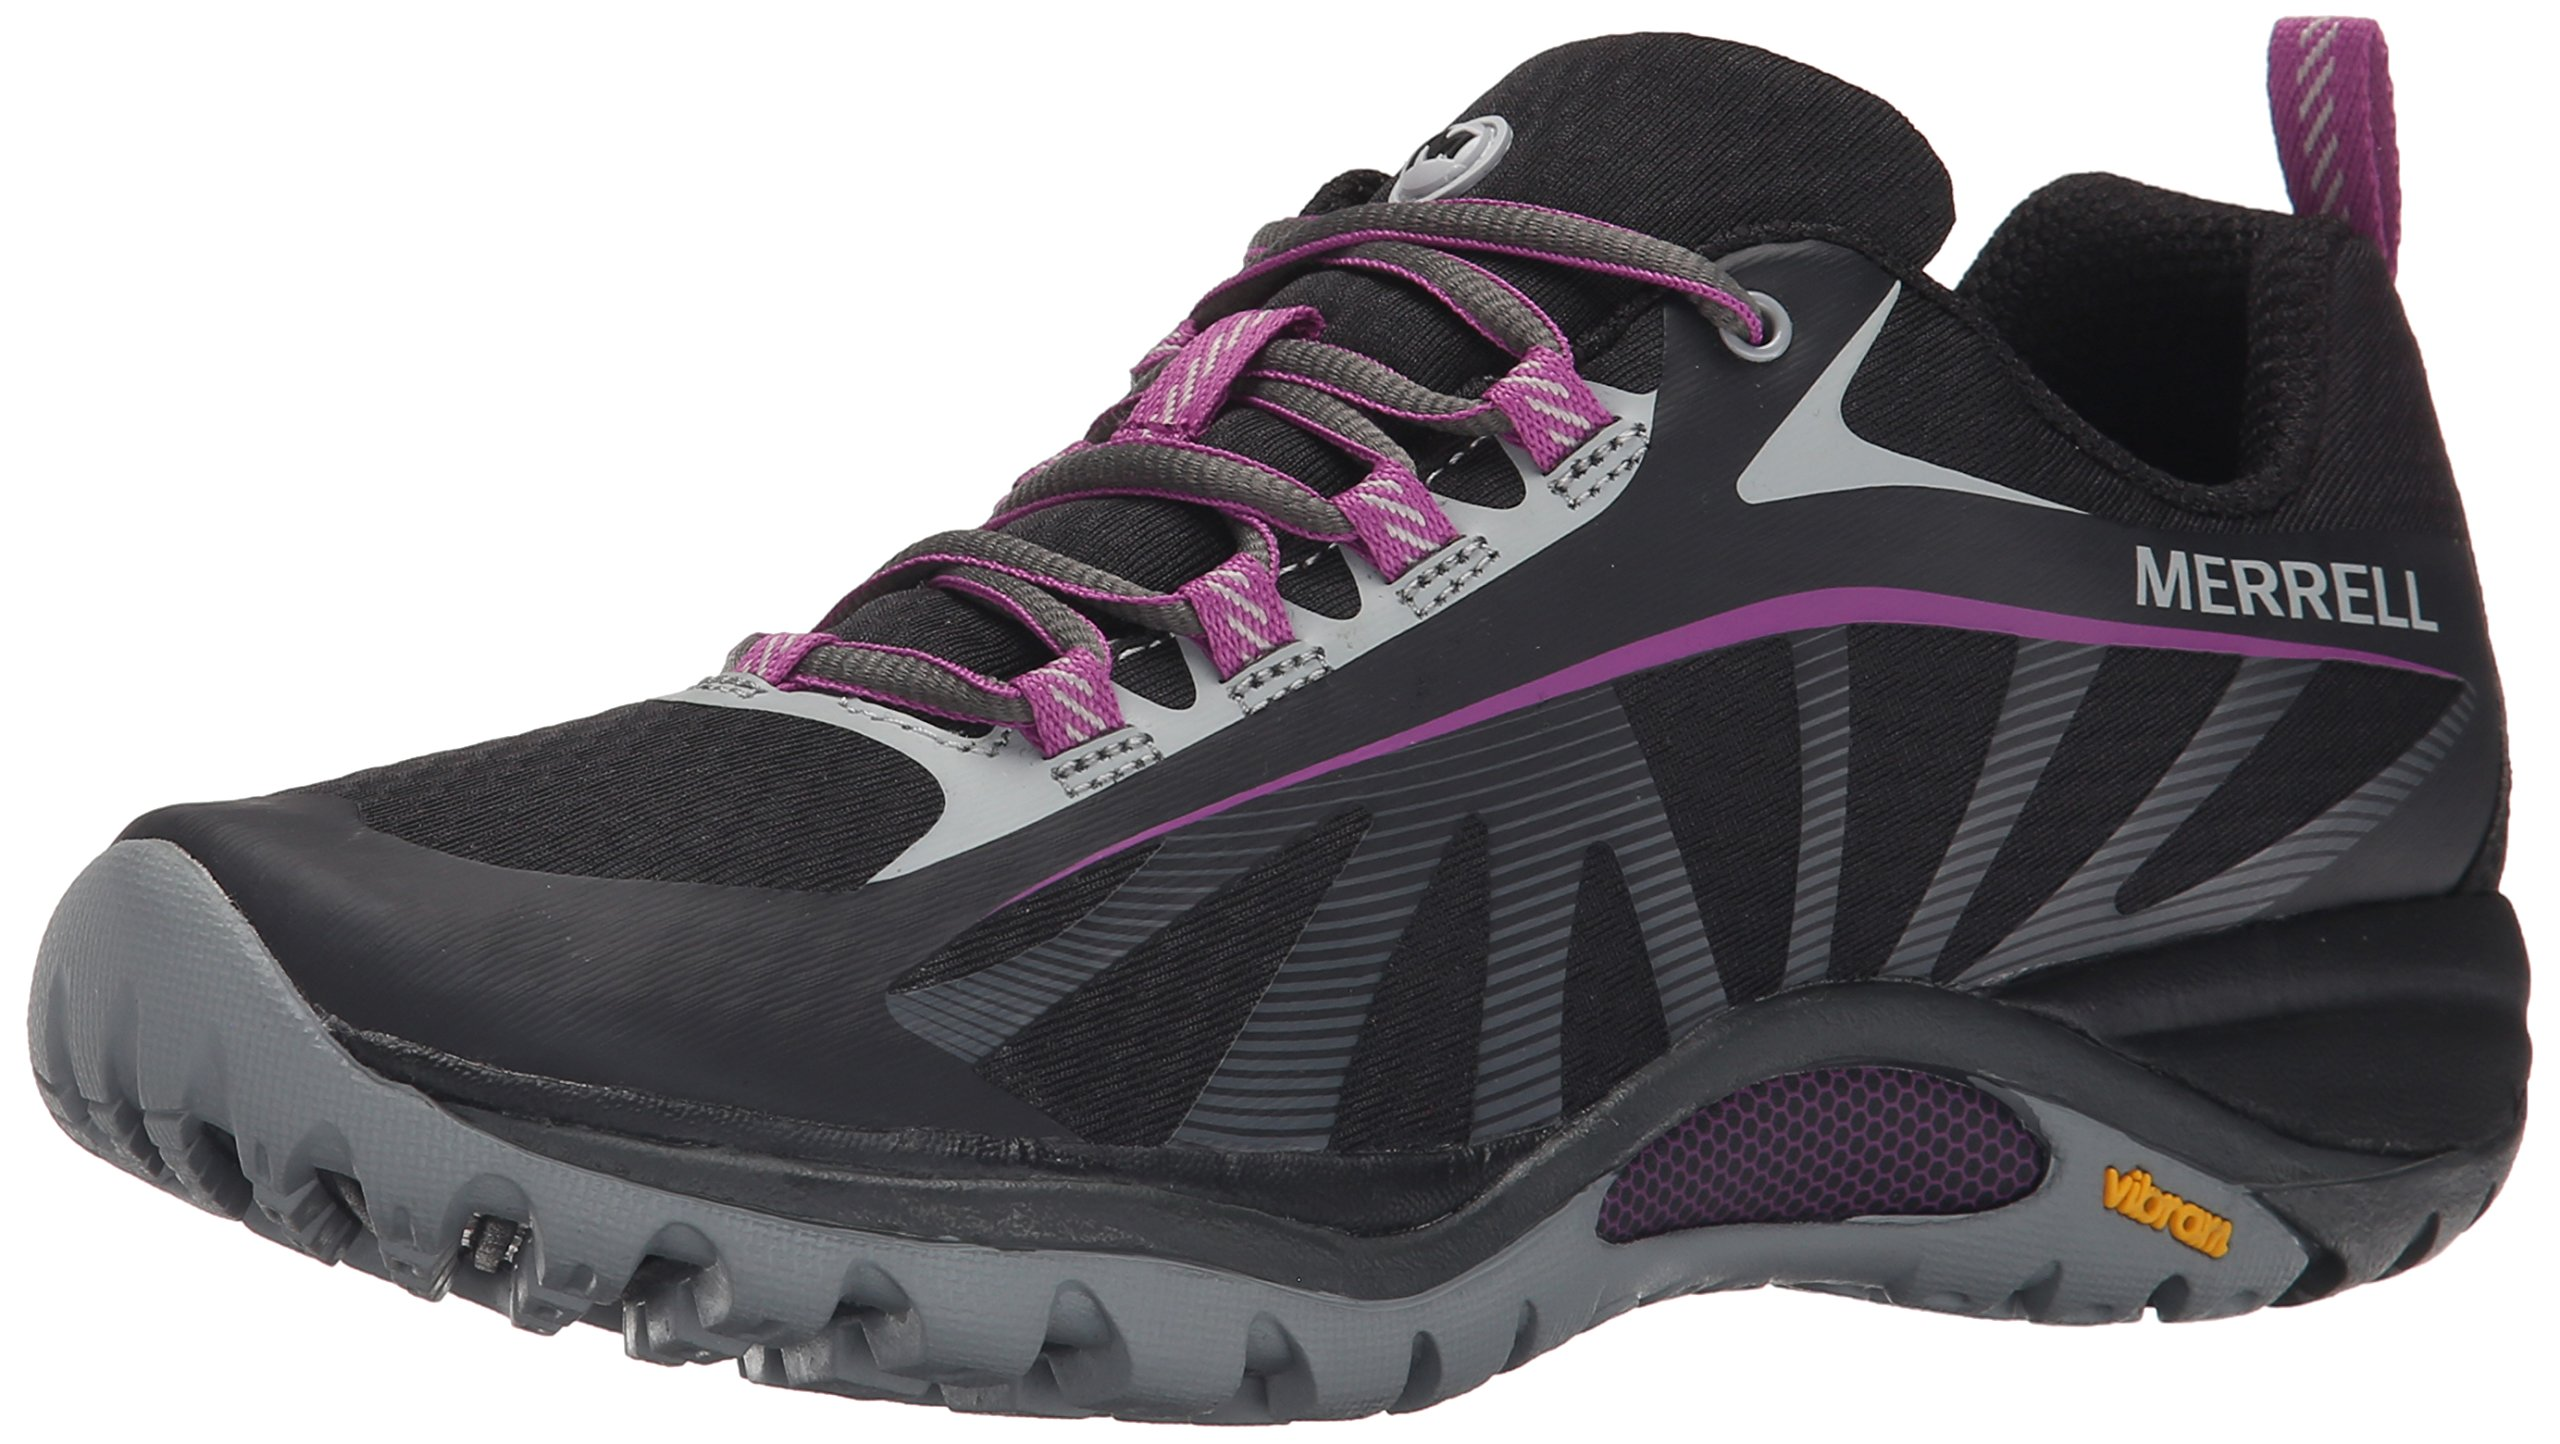 Merrell Women's Siren Edge Shoe, Black/Purple, 8.5 M US